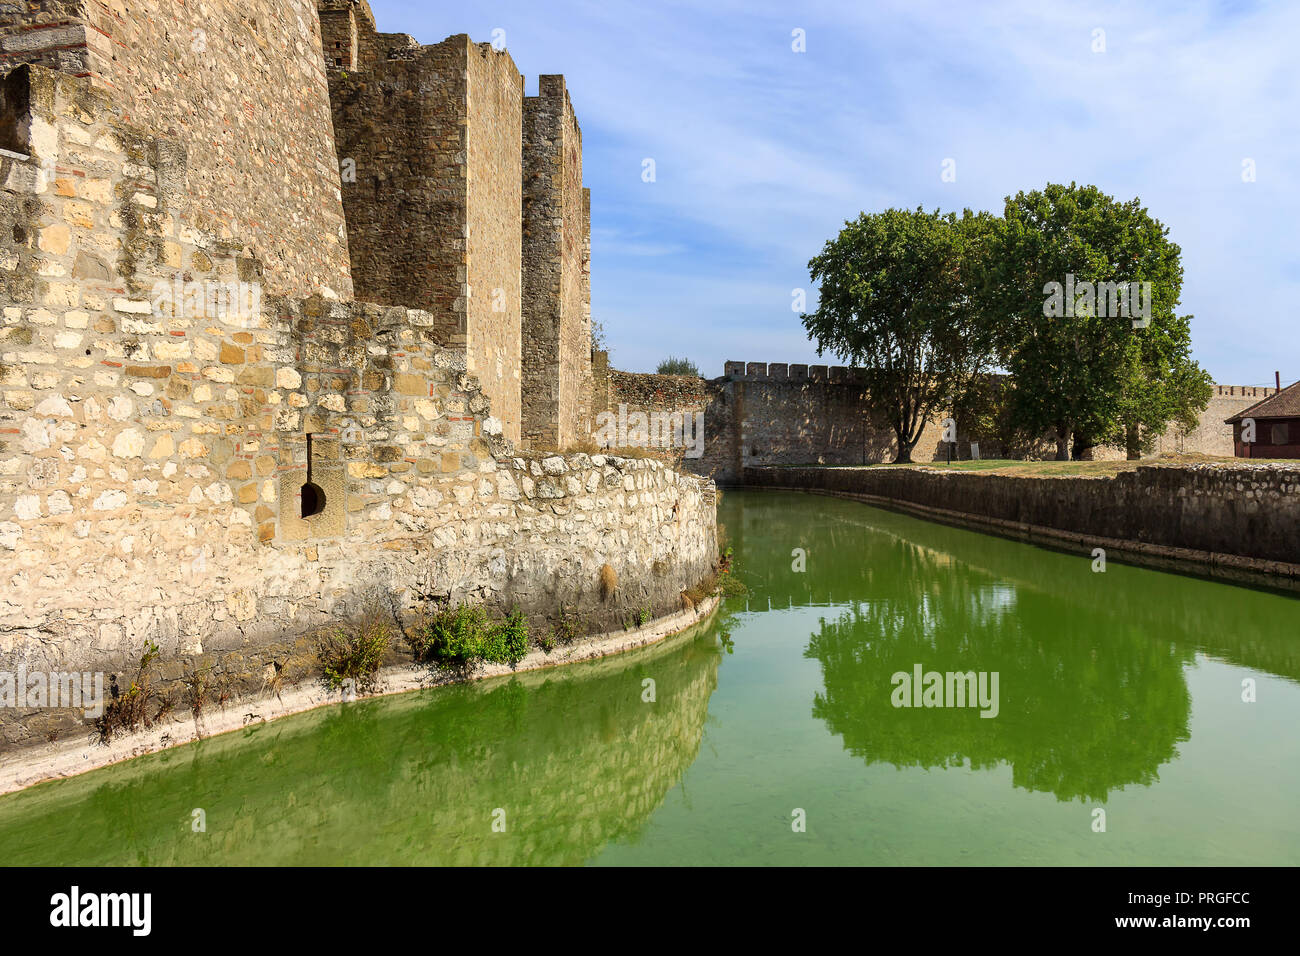 Channel with green, reflective water surrounding ancient Smederevo fortress - Stock Image